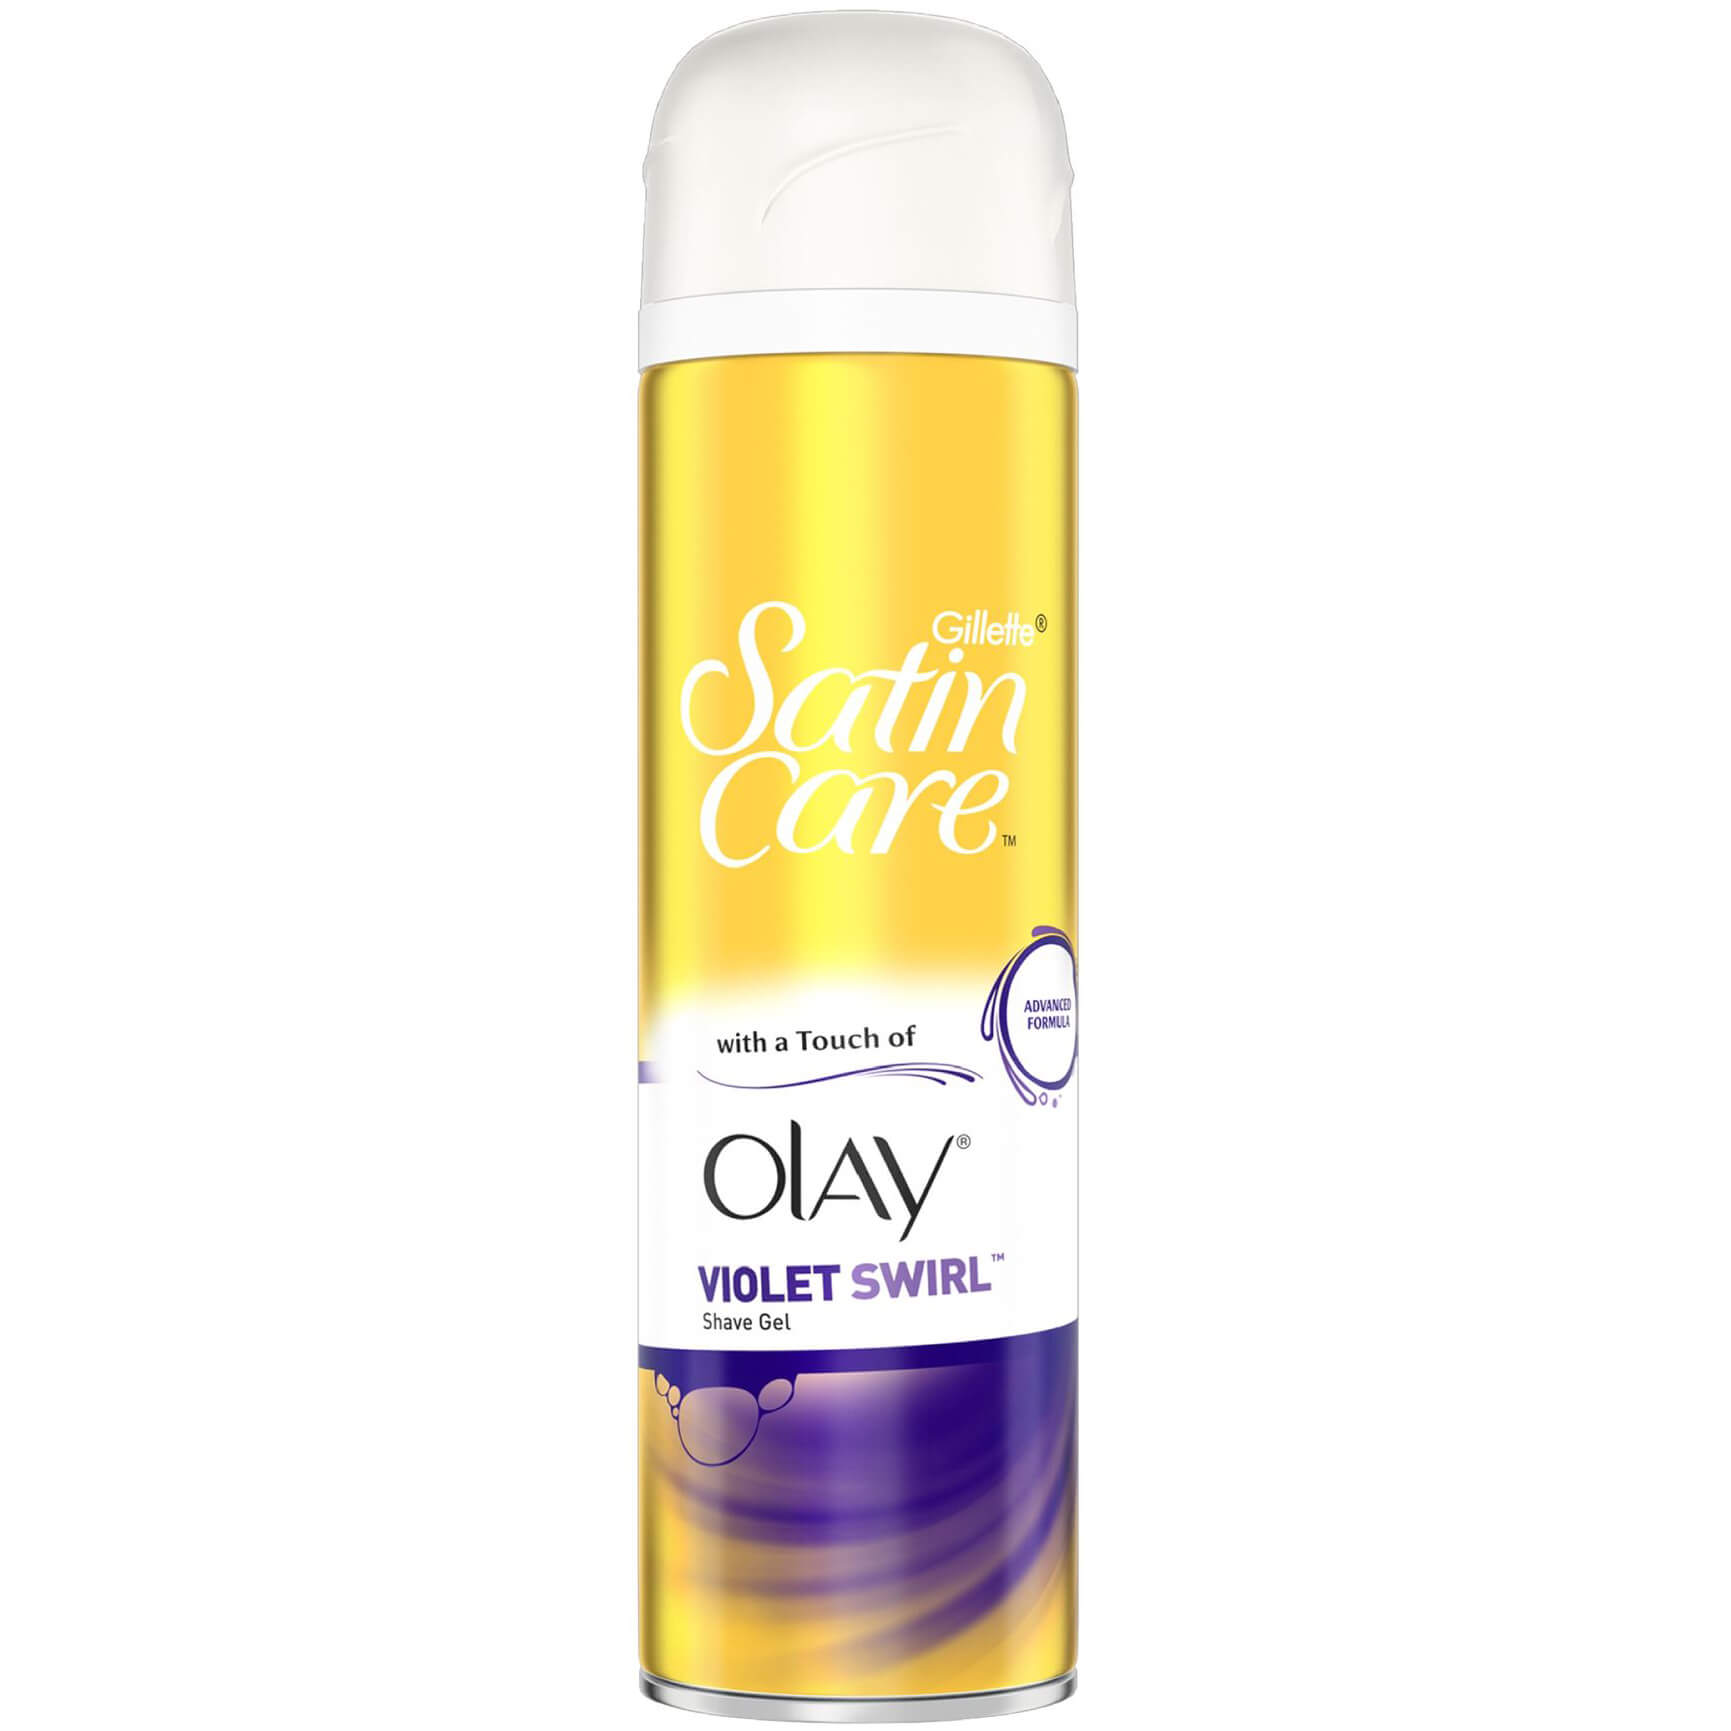 Gillette Satin Care Gel Ξυρίσματος Violet Swirl With a Touch of Olay για Άψογο Ξύρισμα 200ml